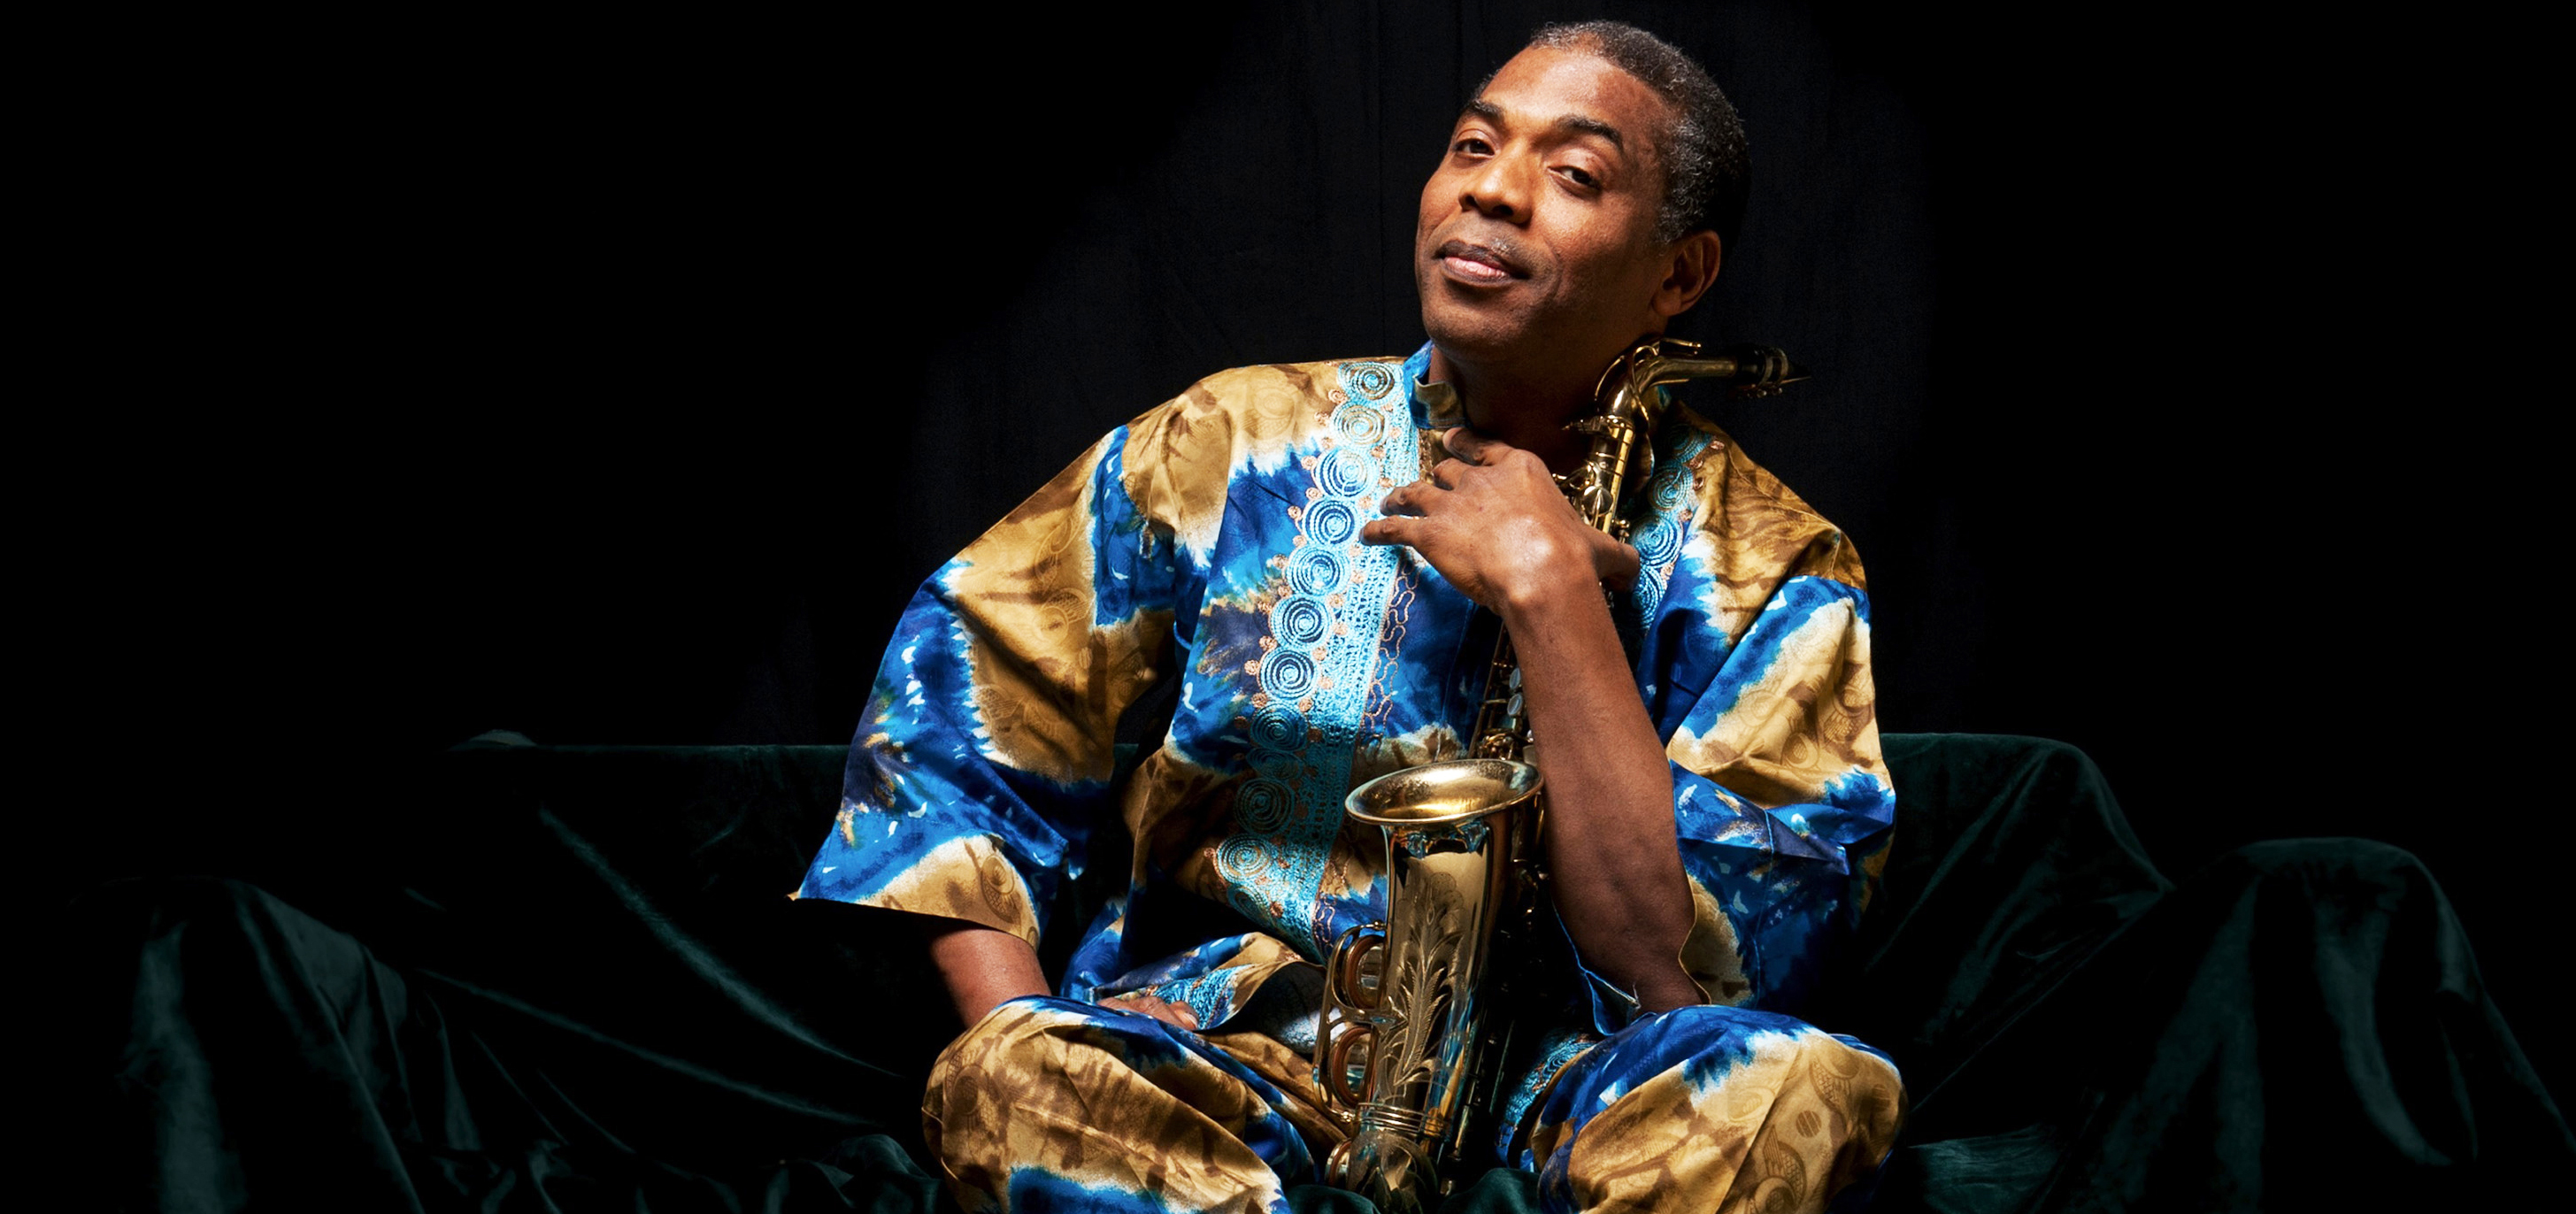 Afro Nation 2019: Femi Kuti, Busy Signal and More Join